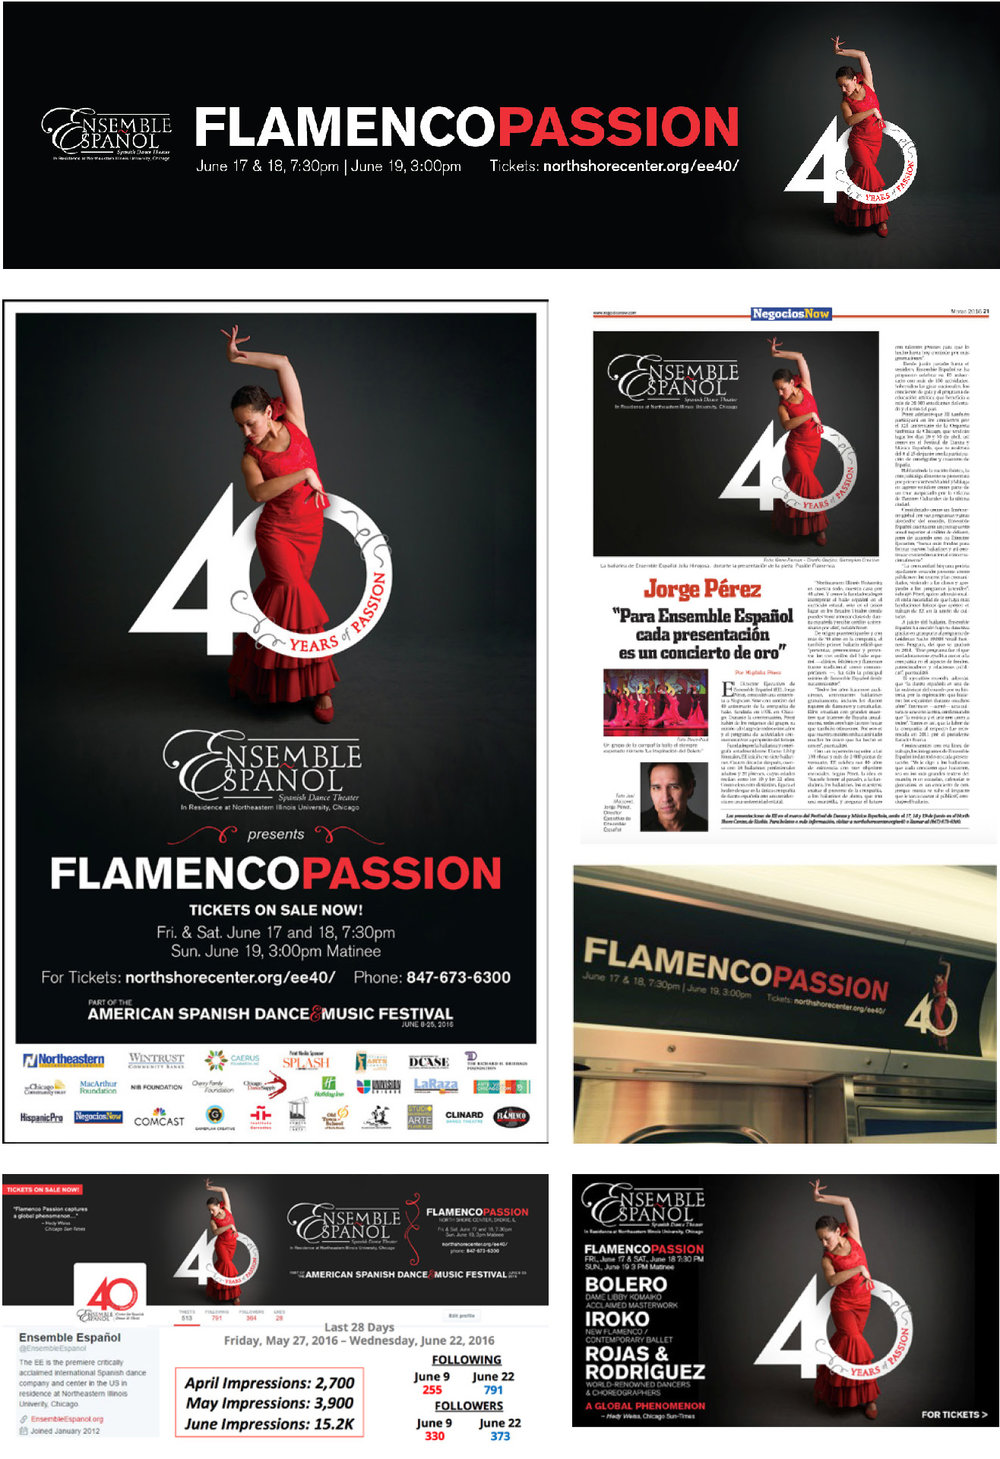 Ensemble Español Flamenco Passion Branding and Marketing